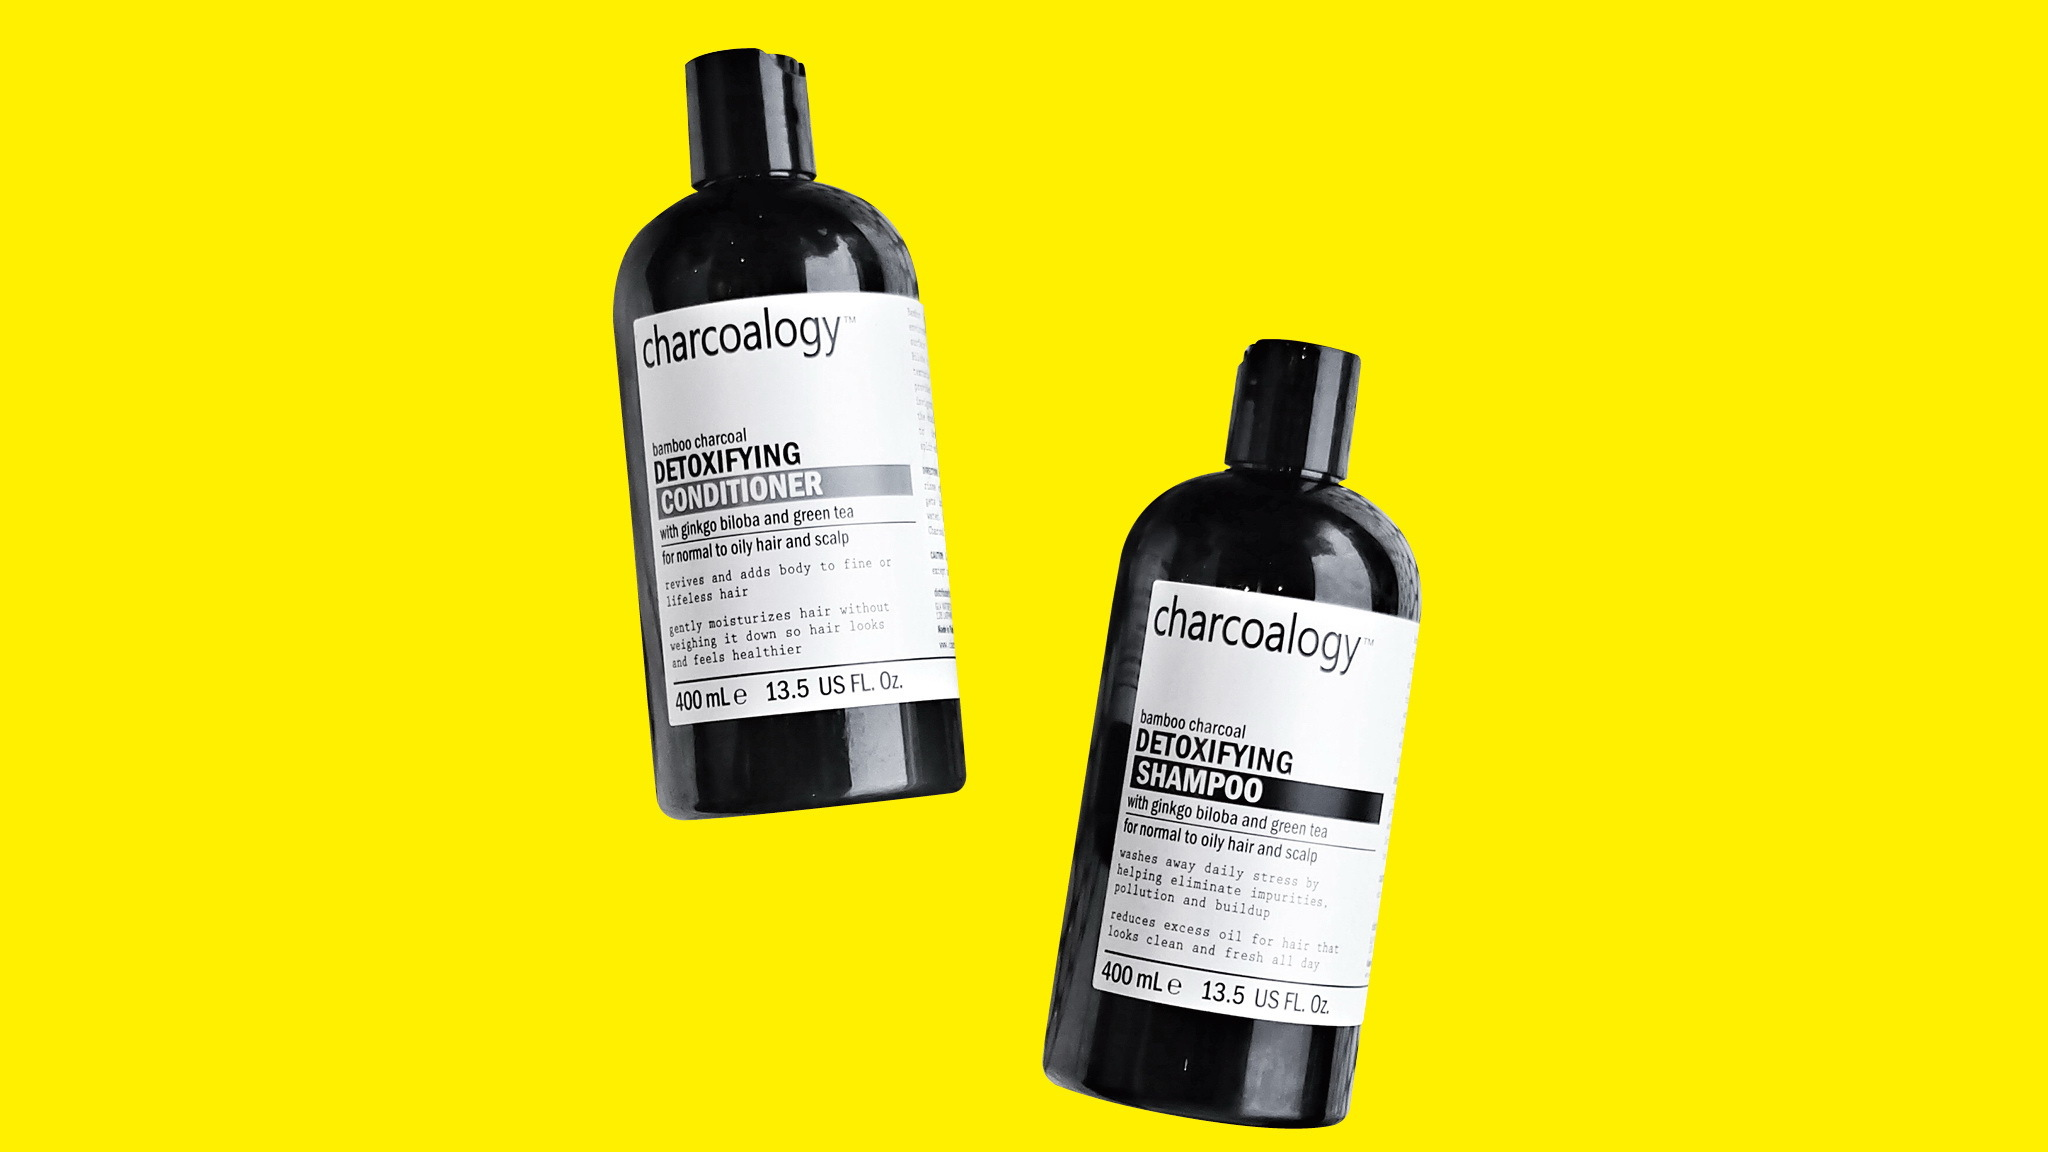 Gift Guide, Charcoal shampoo conditioner, Charcoalogy